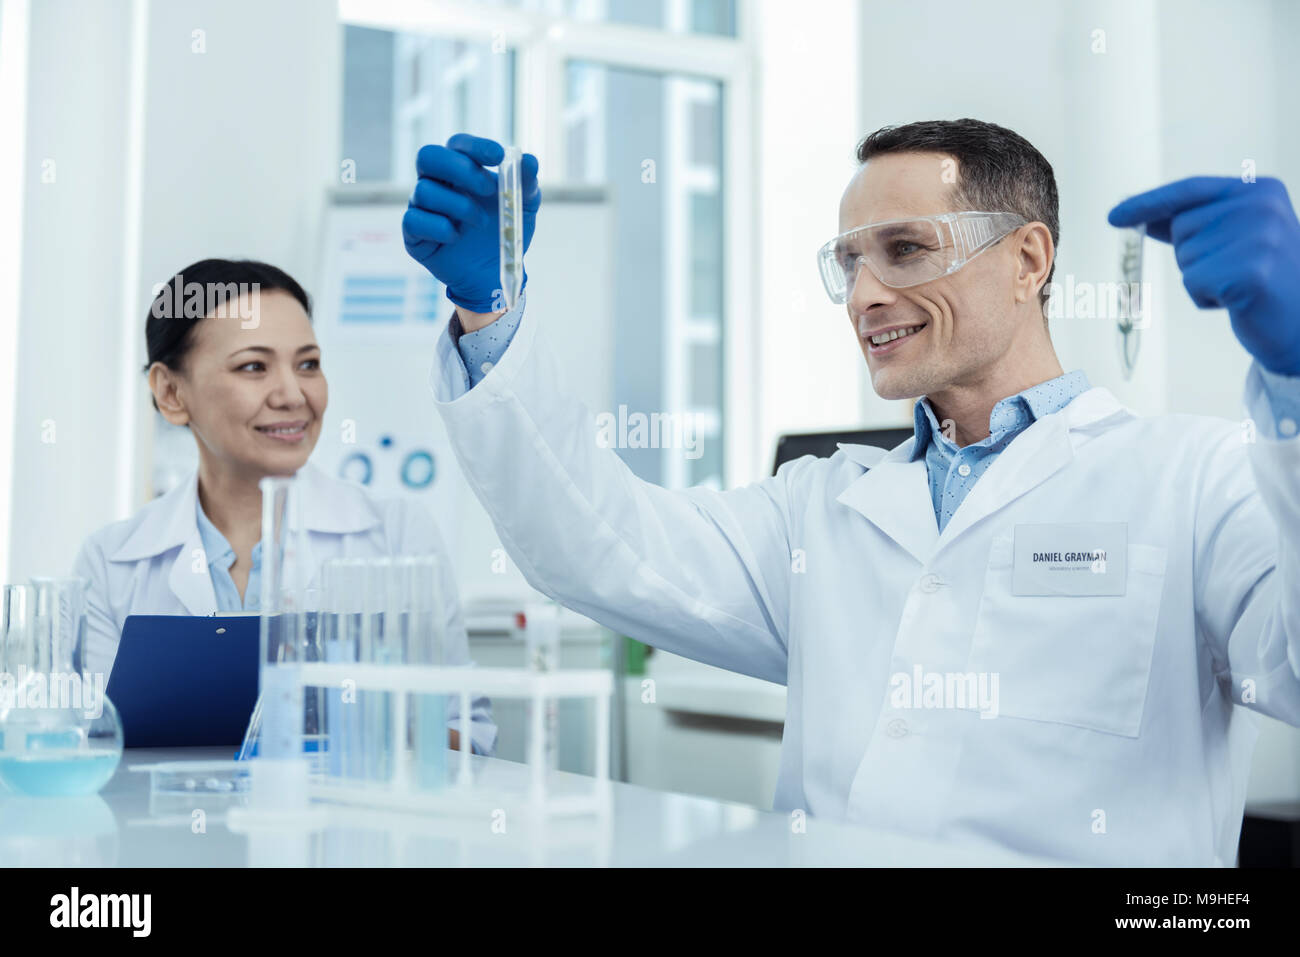 Enthusiastic scientists having an experiment - Stock Image